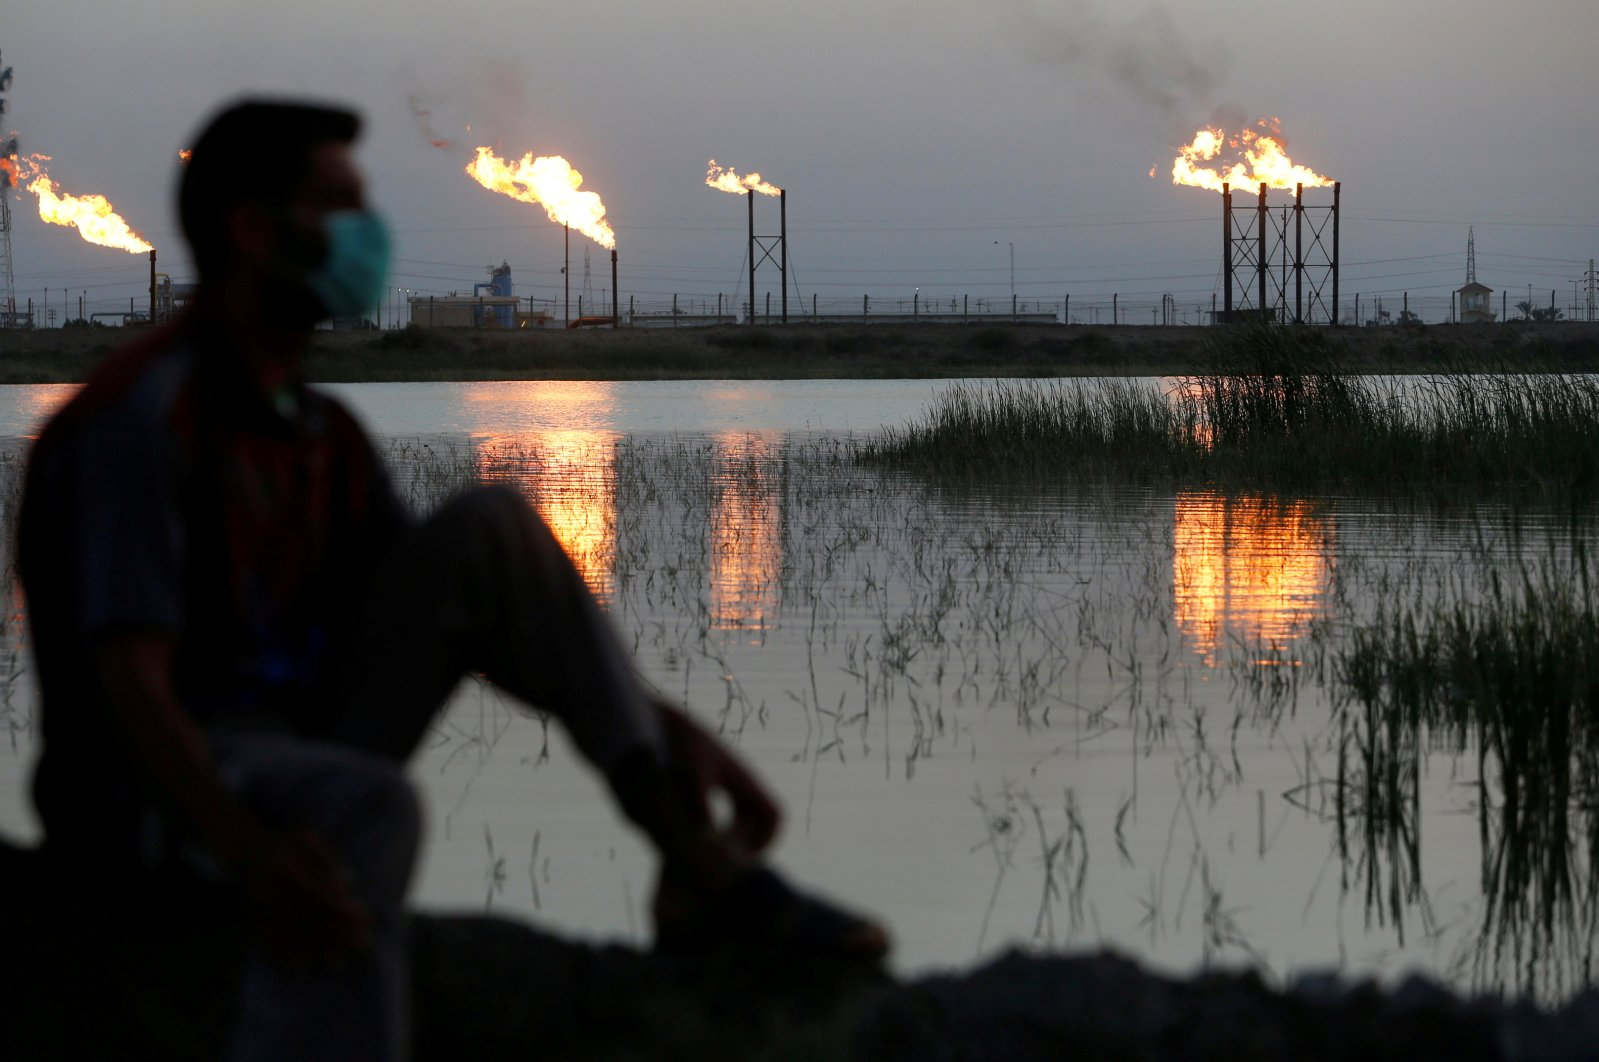 Flames emerge from flare stacks at Nahr Bin Umar oil field, as a man is seen wearing a protective face mask following the outbreak of the coronavirus, north of Basra, Iraq, March 9, 2020. (Reuters Photo)